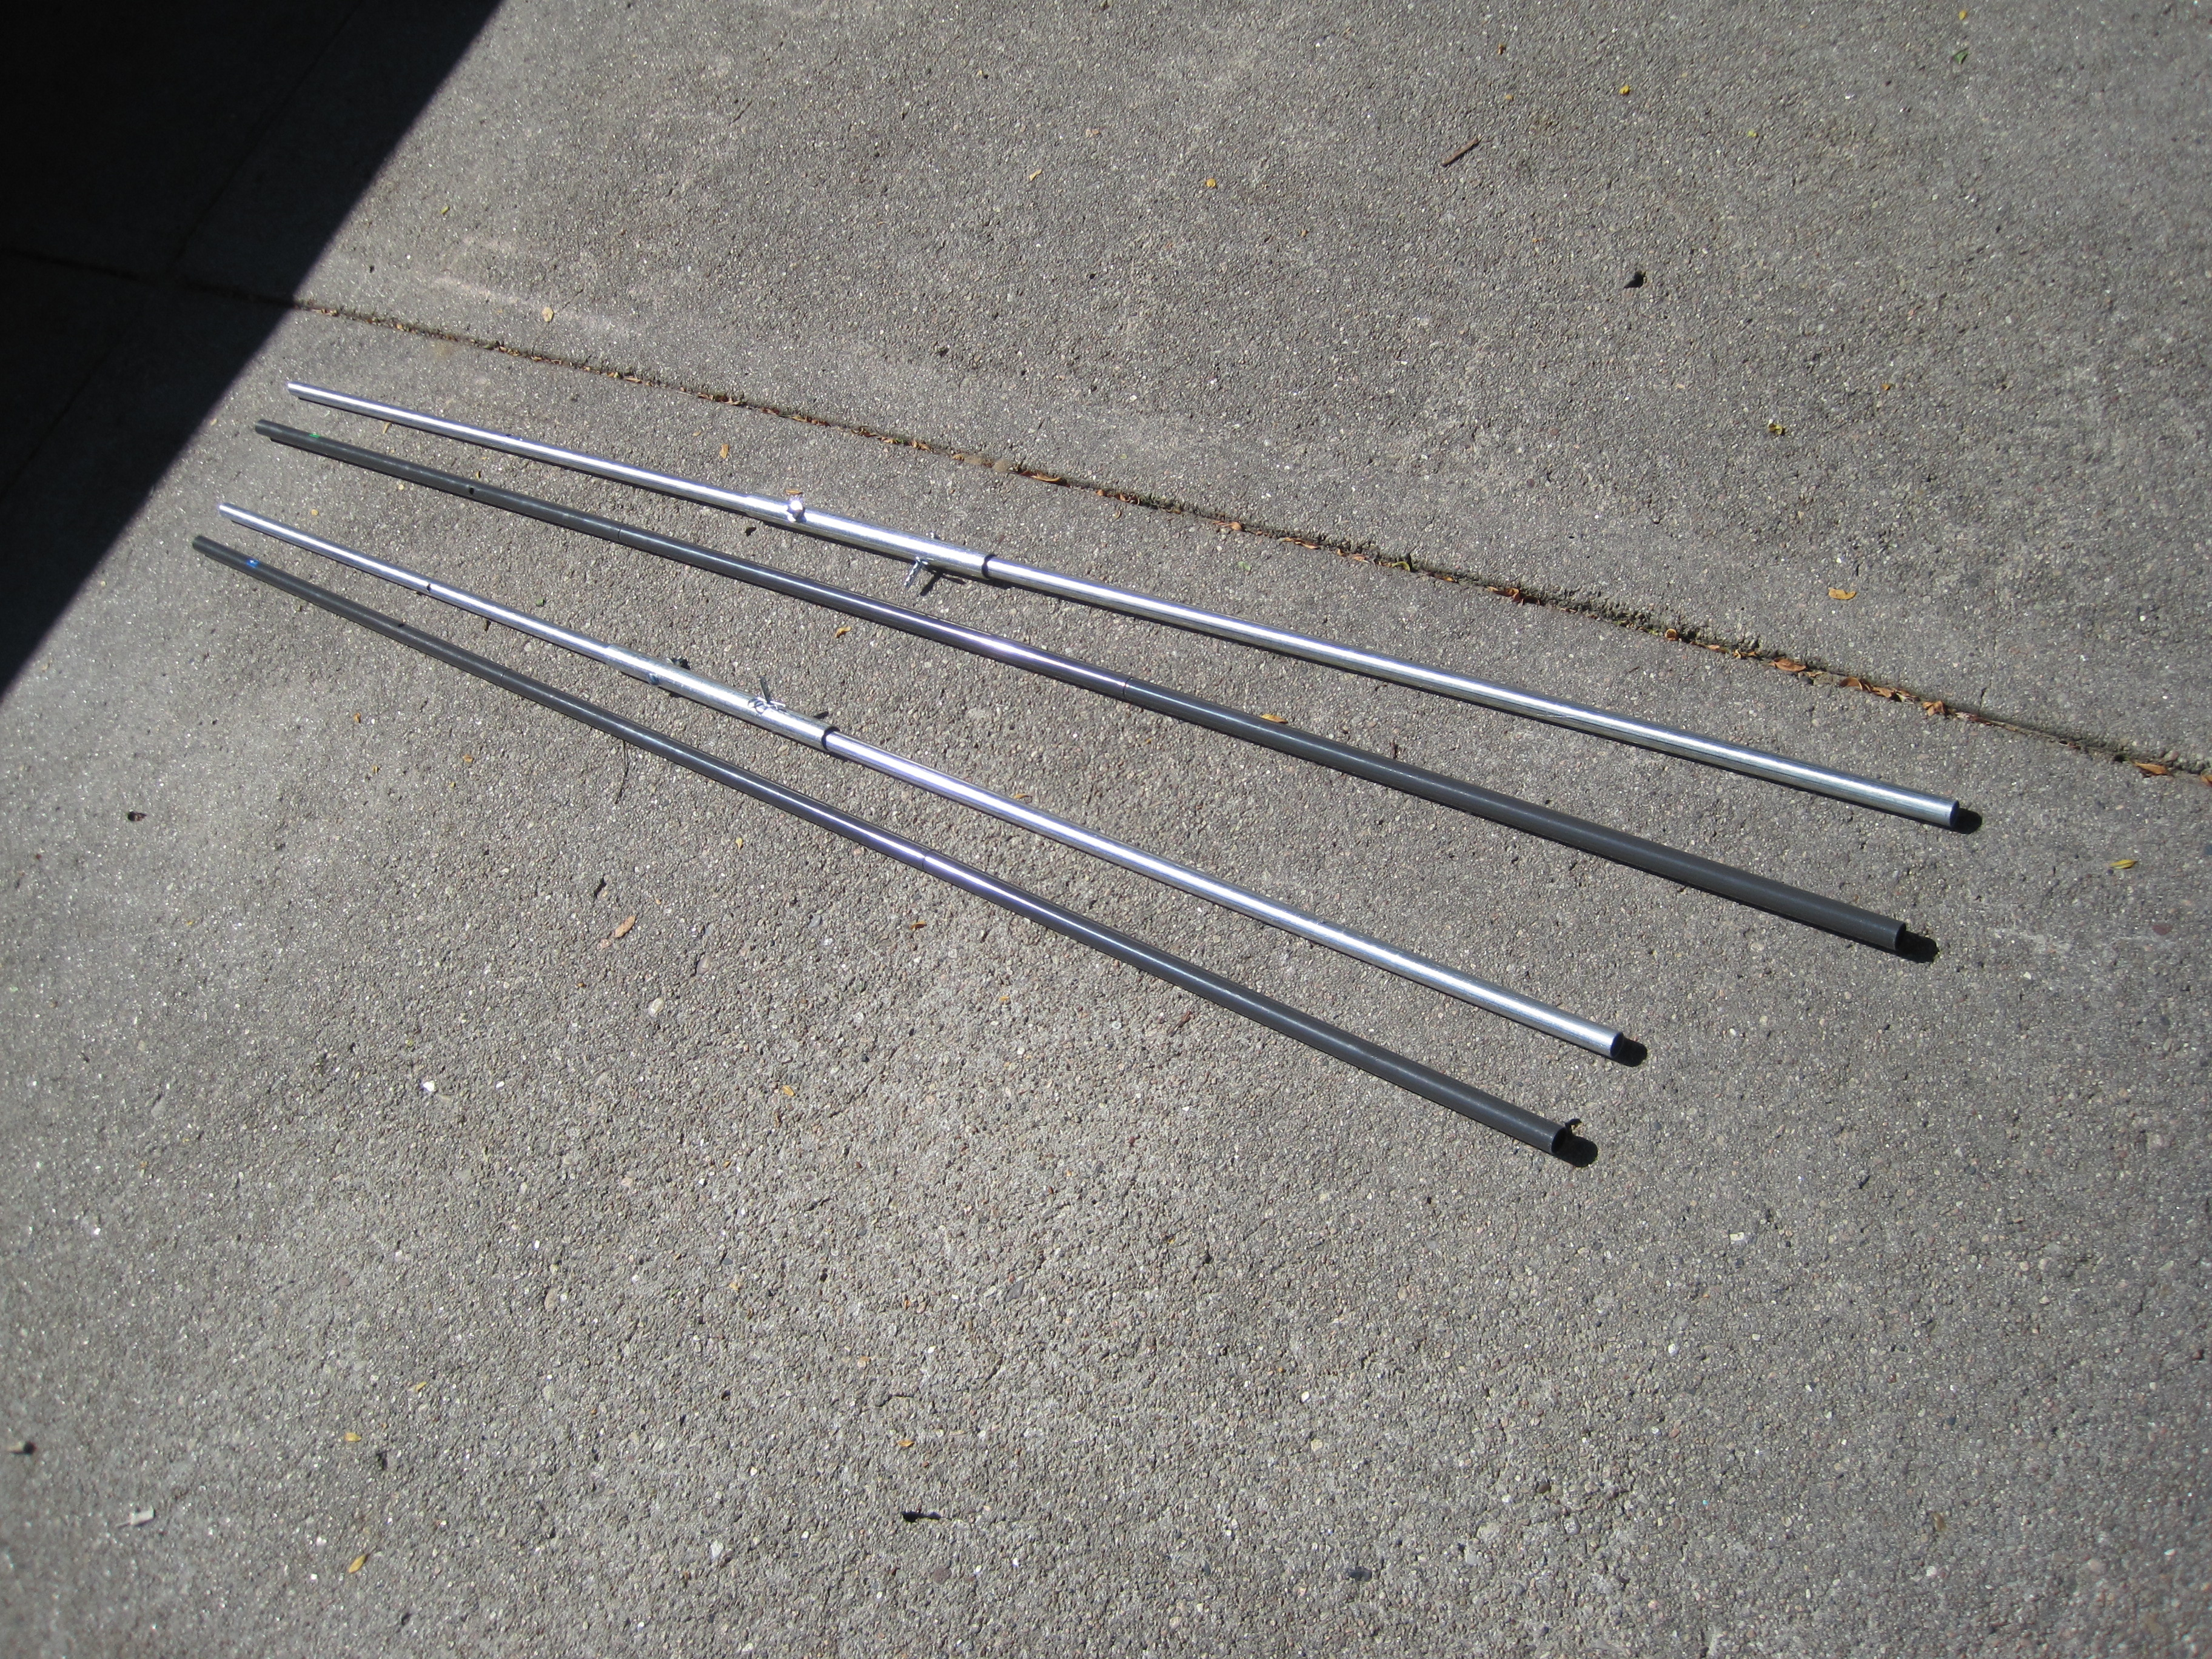 Make Replacement Tent Poles & Make Replacement Tent Poles: 5 Steps (with Pictures)